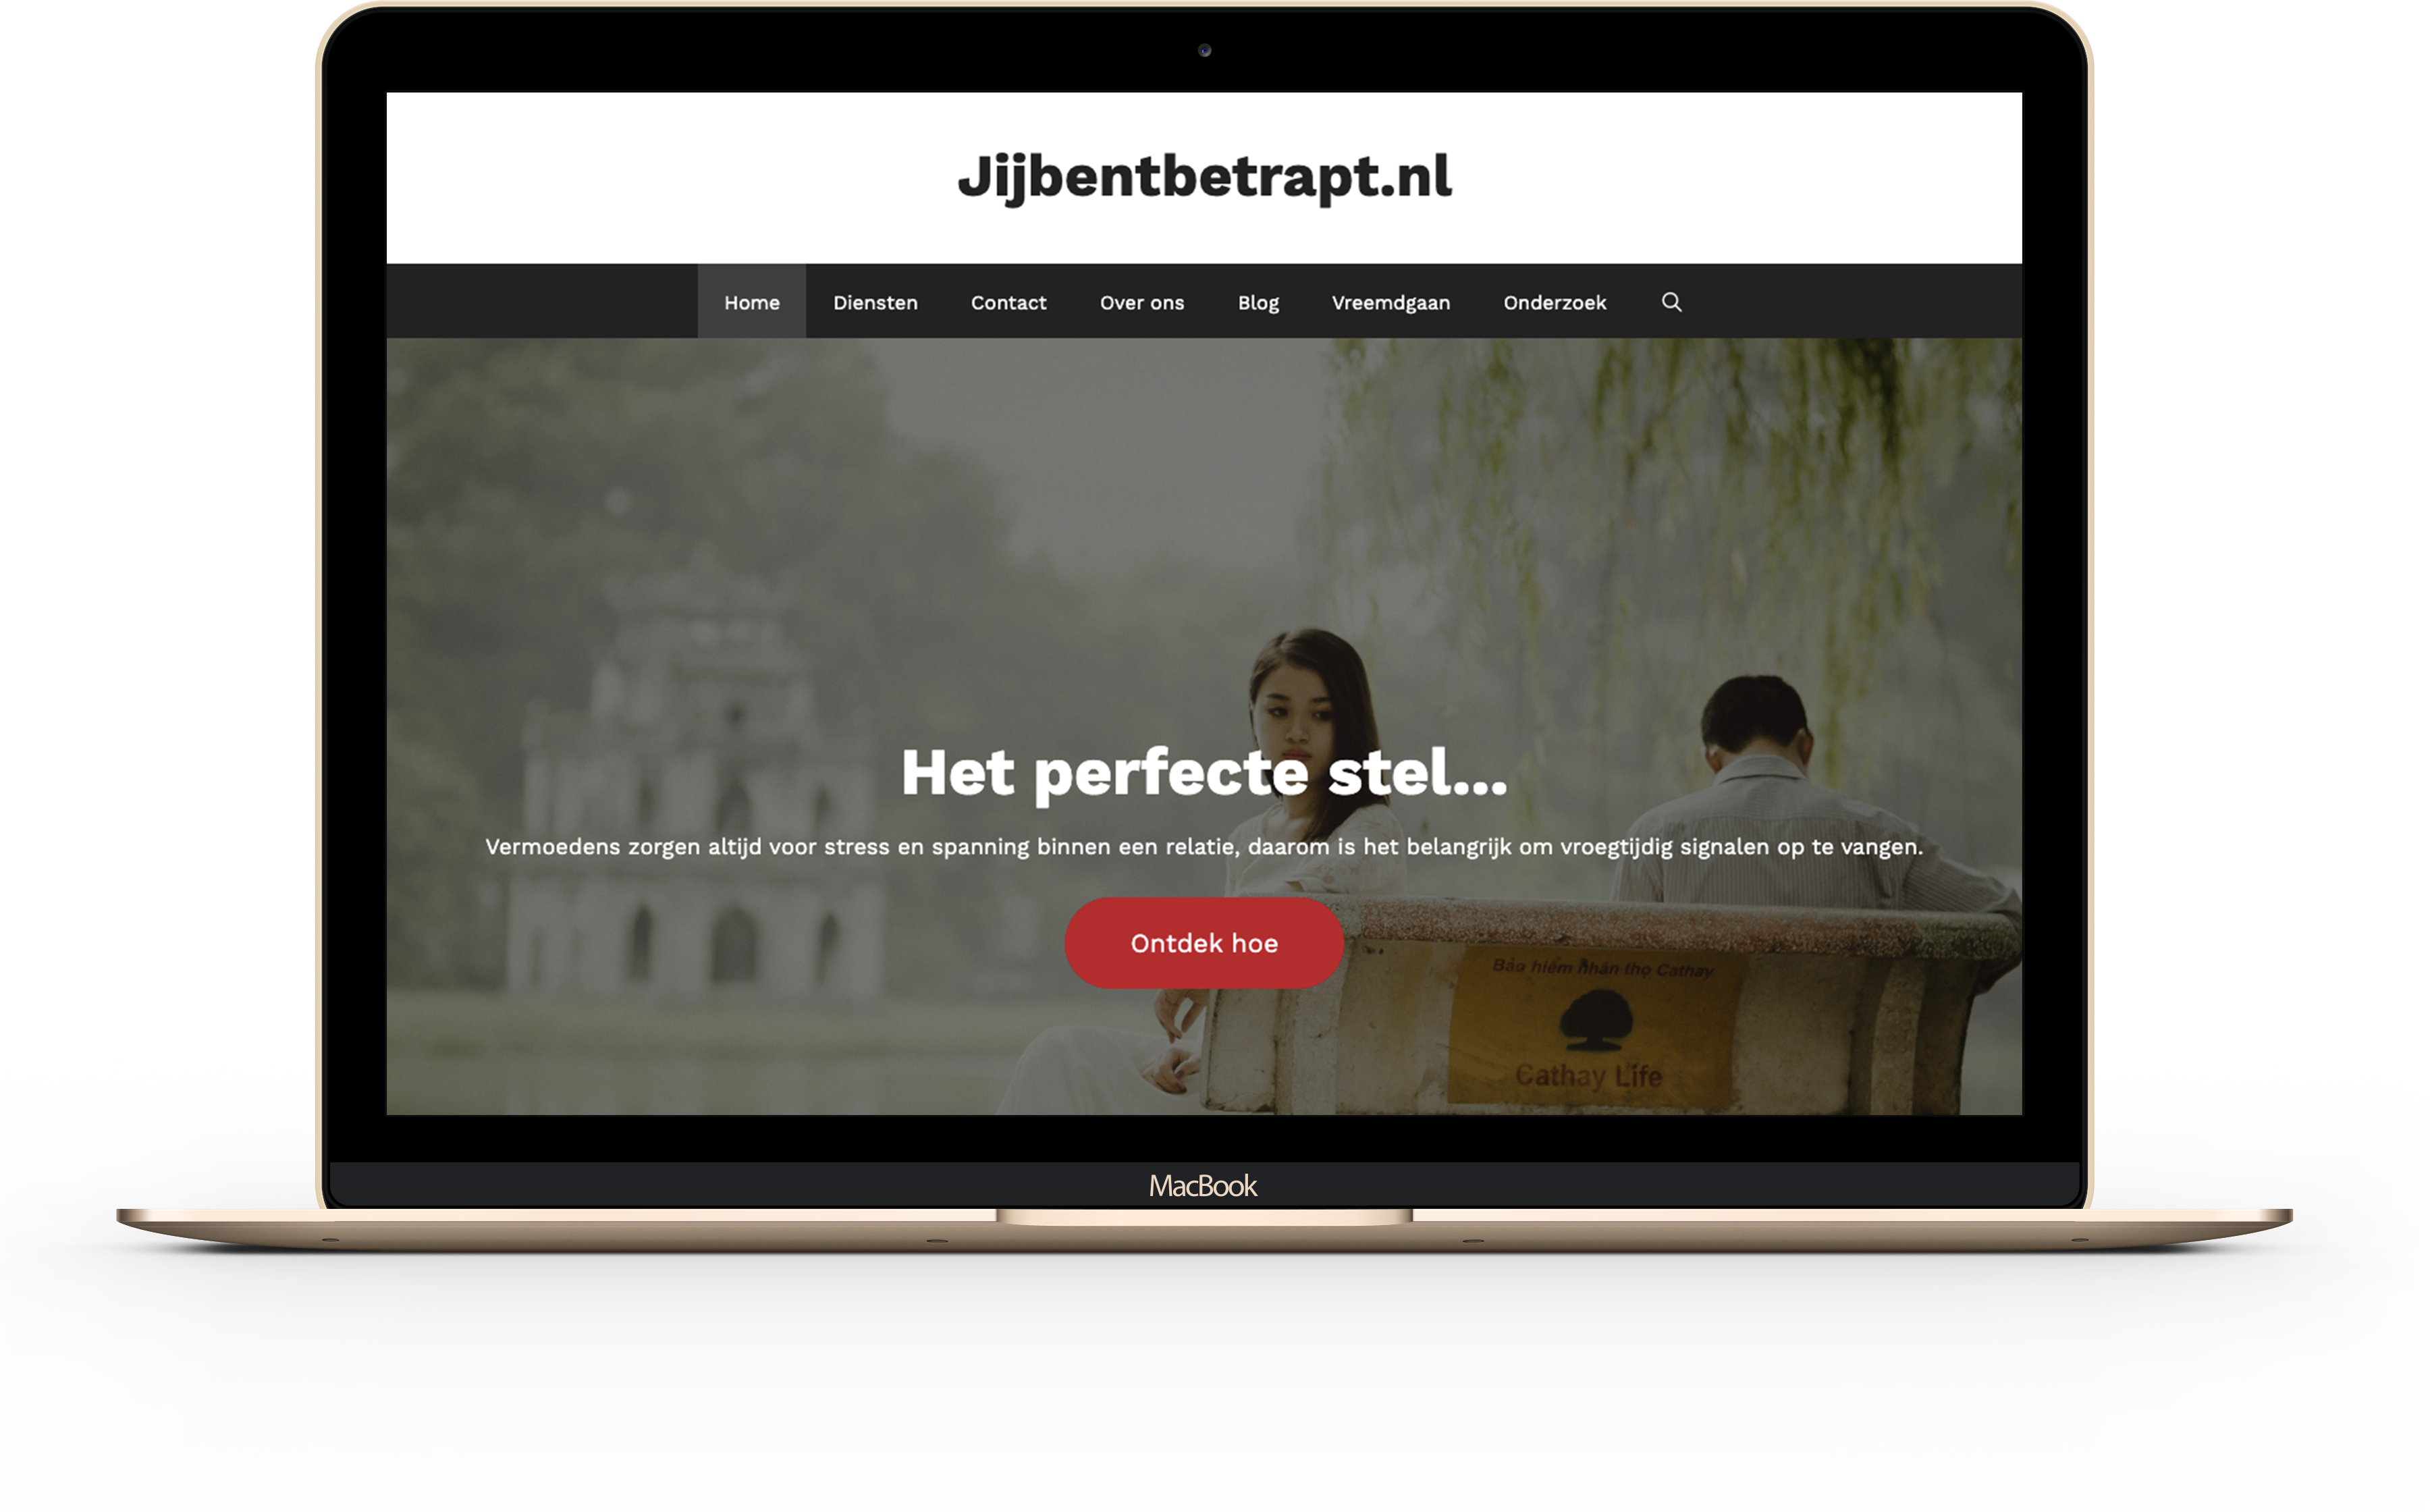 Sixpaths-project-jijbentbetrapt